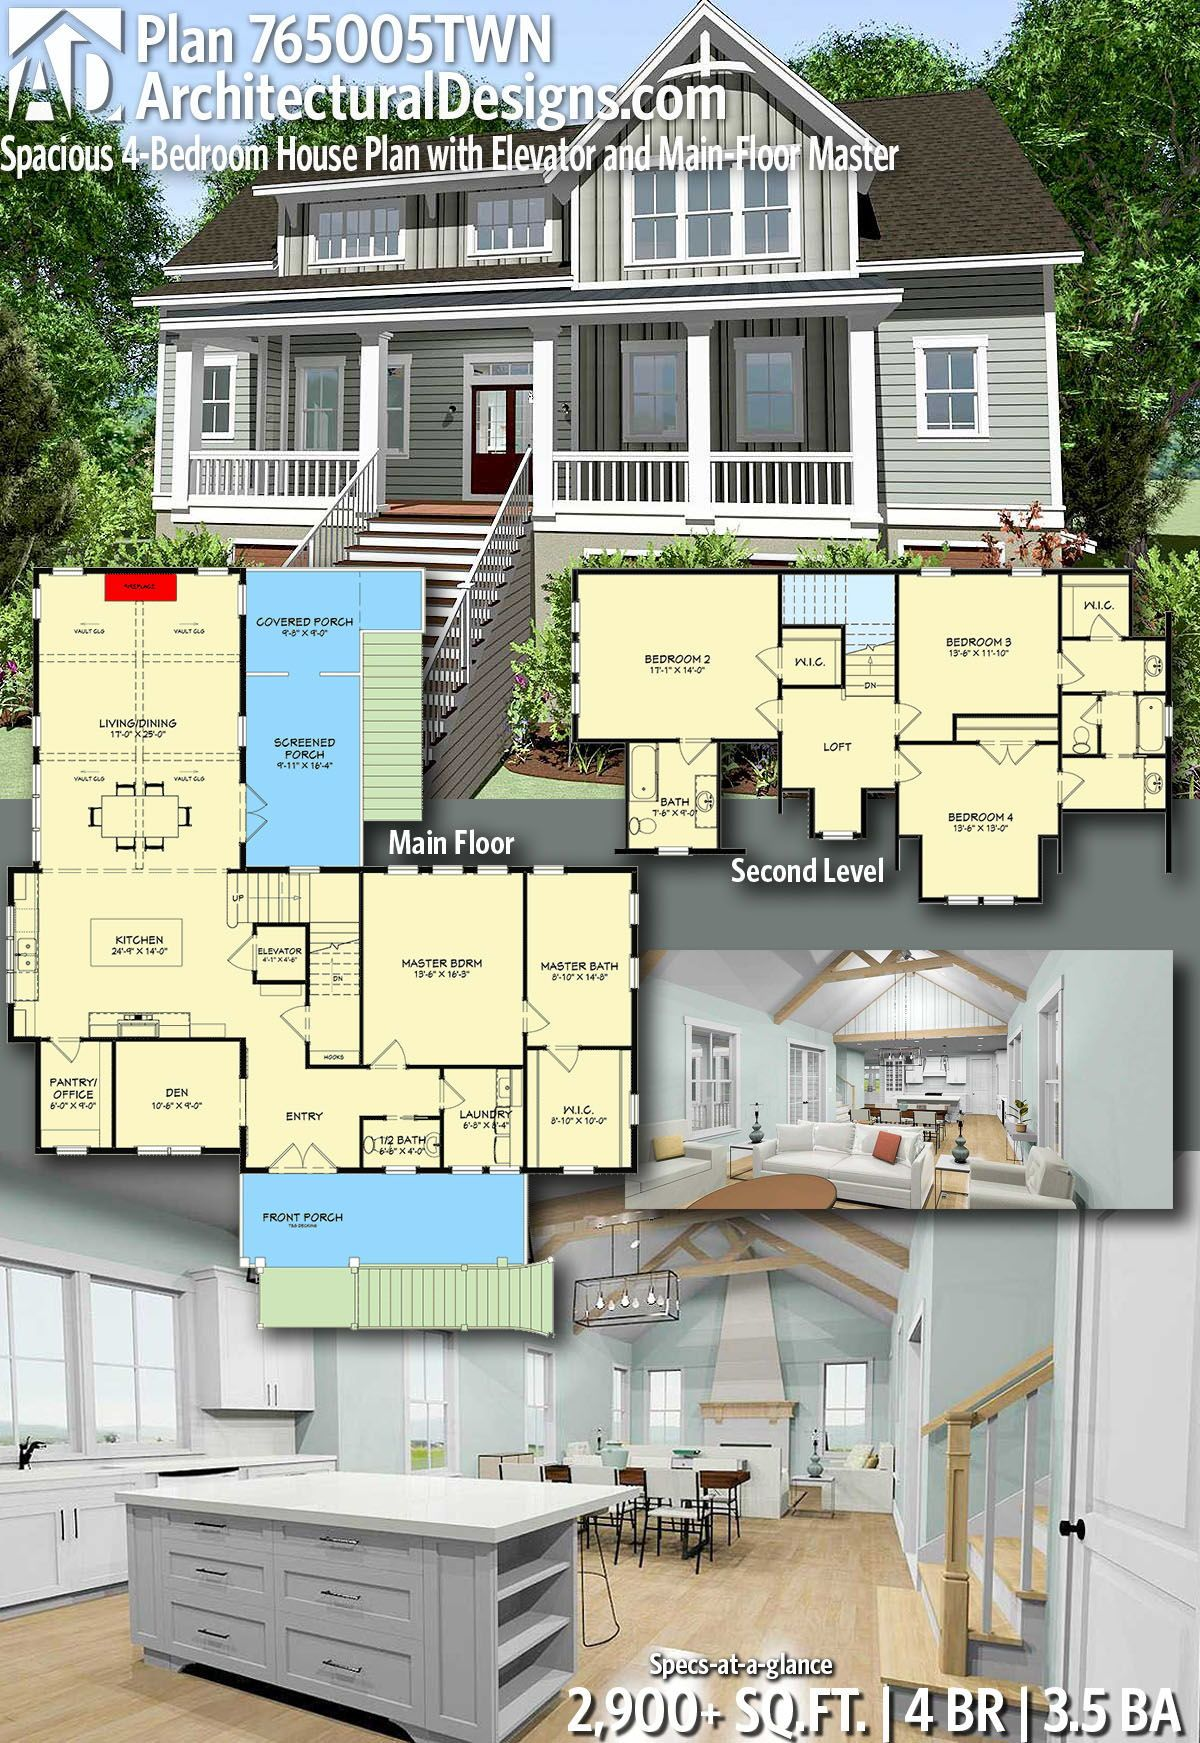 Architectural designs home plan twn gives you bedrooms baths and sq also rh ar pinterest